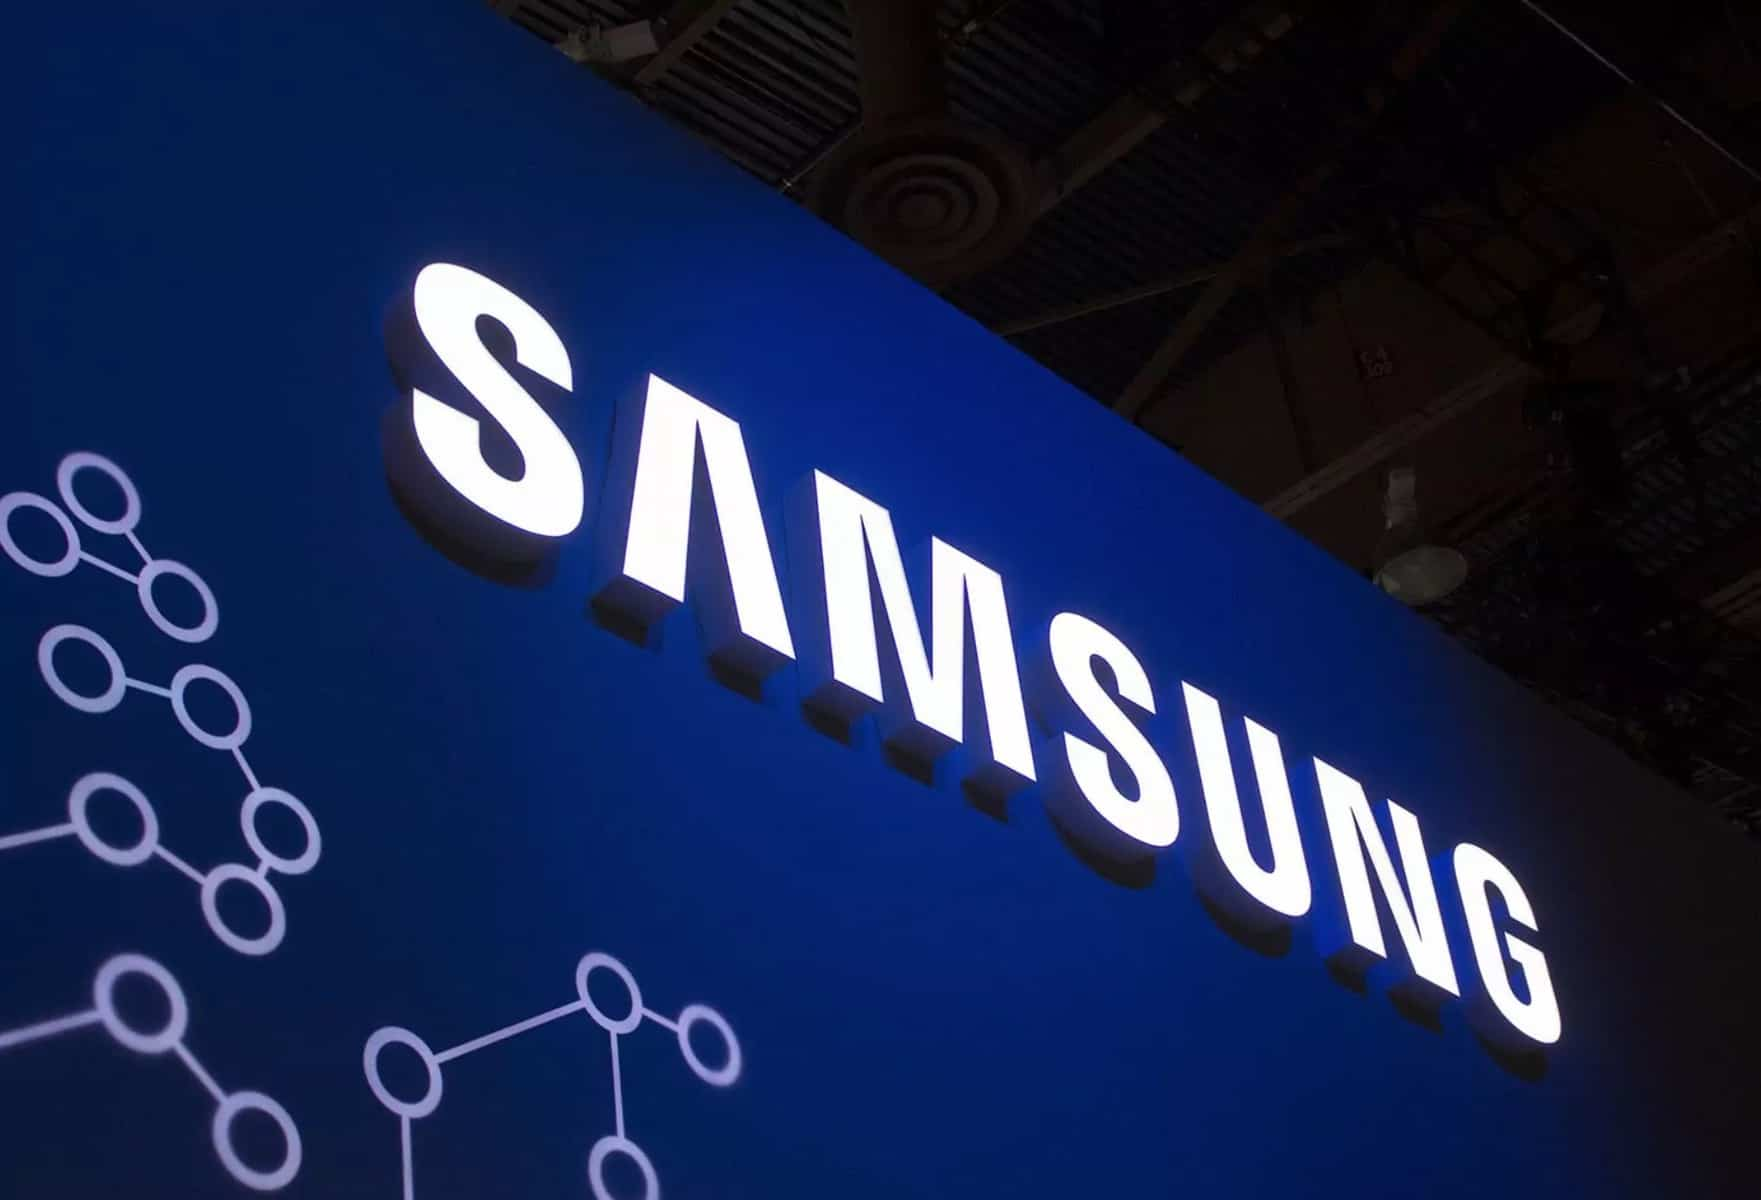 Future Samsung smartphones could benefit from this cooling technology